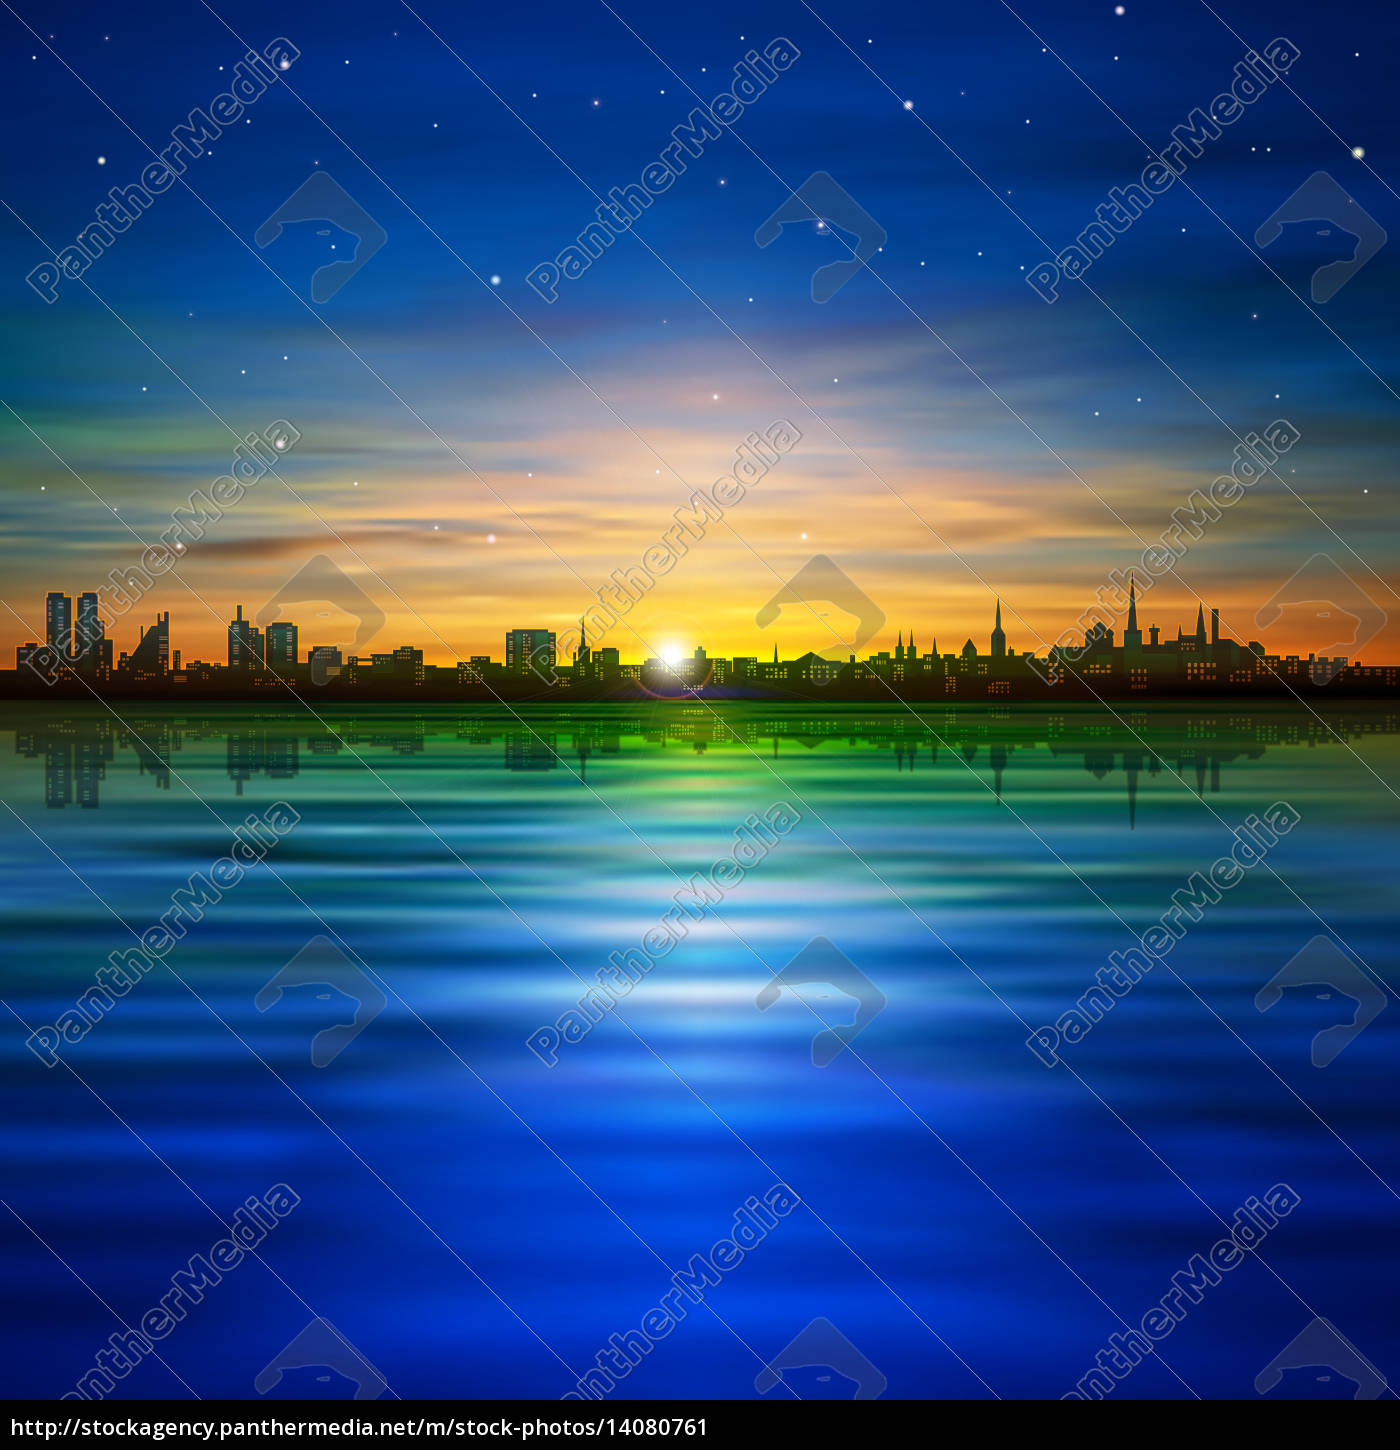 abstract, background, with, panorama, of, city - 14080761